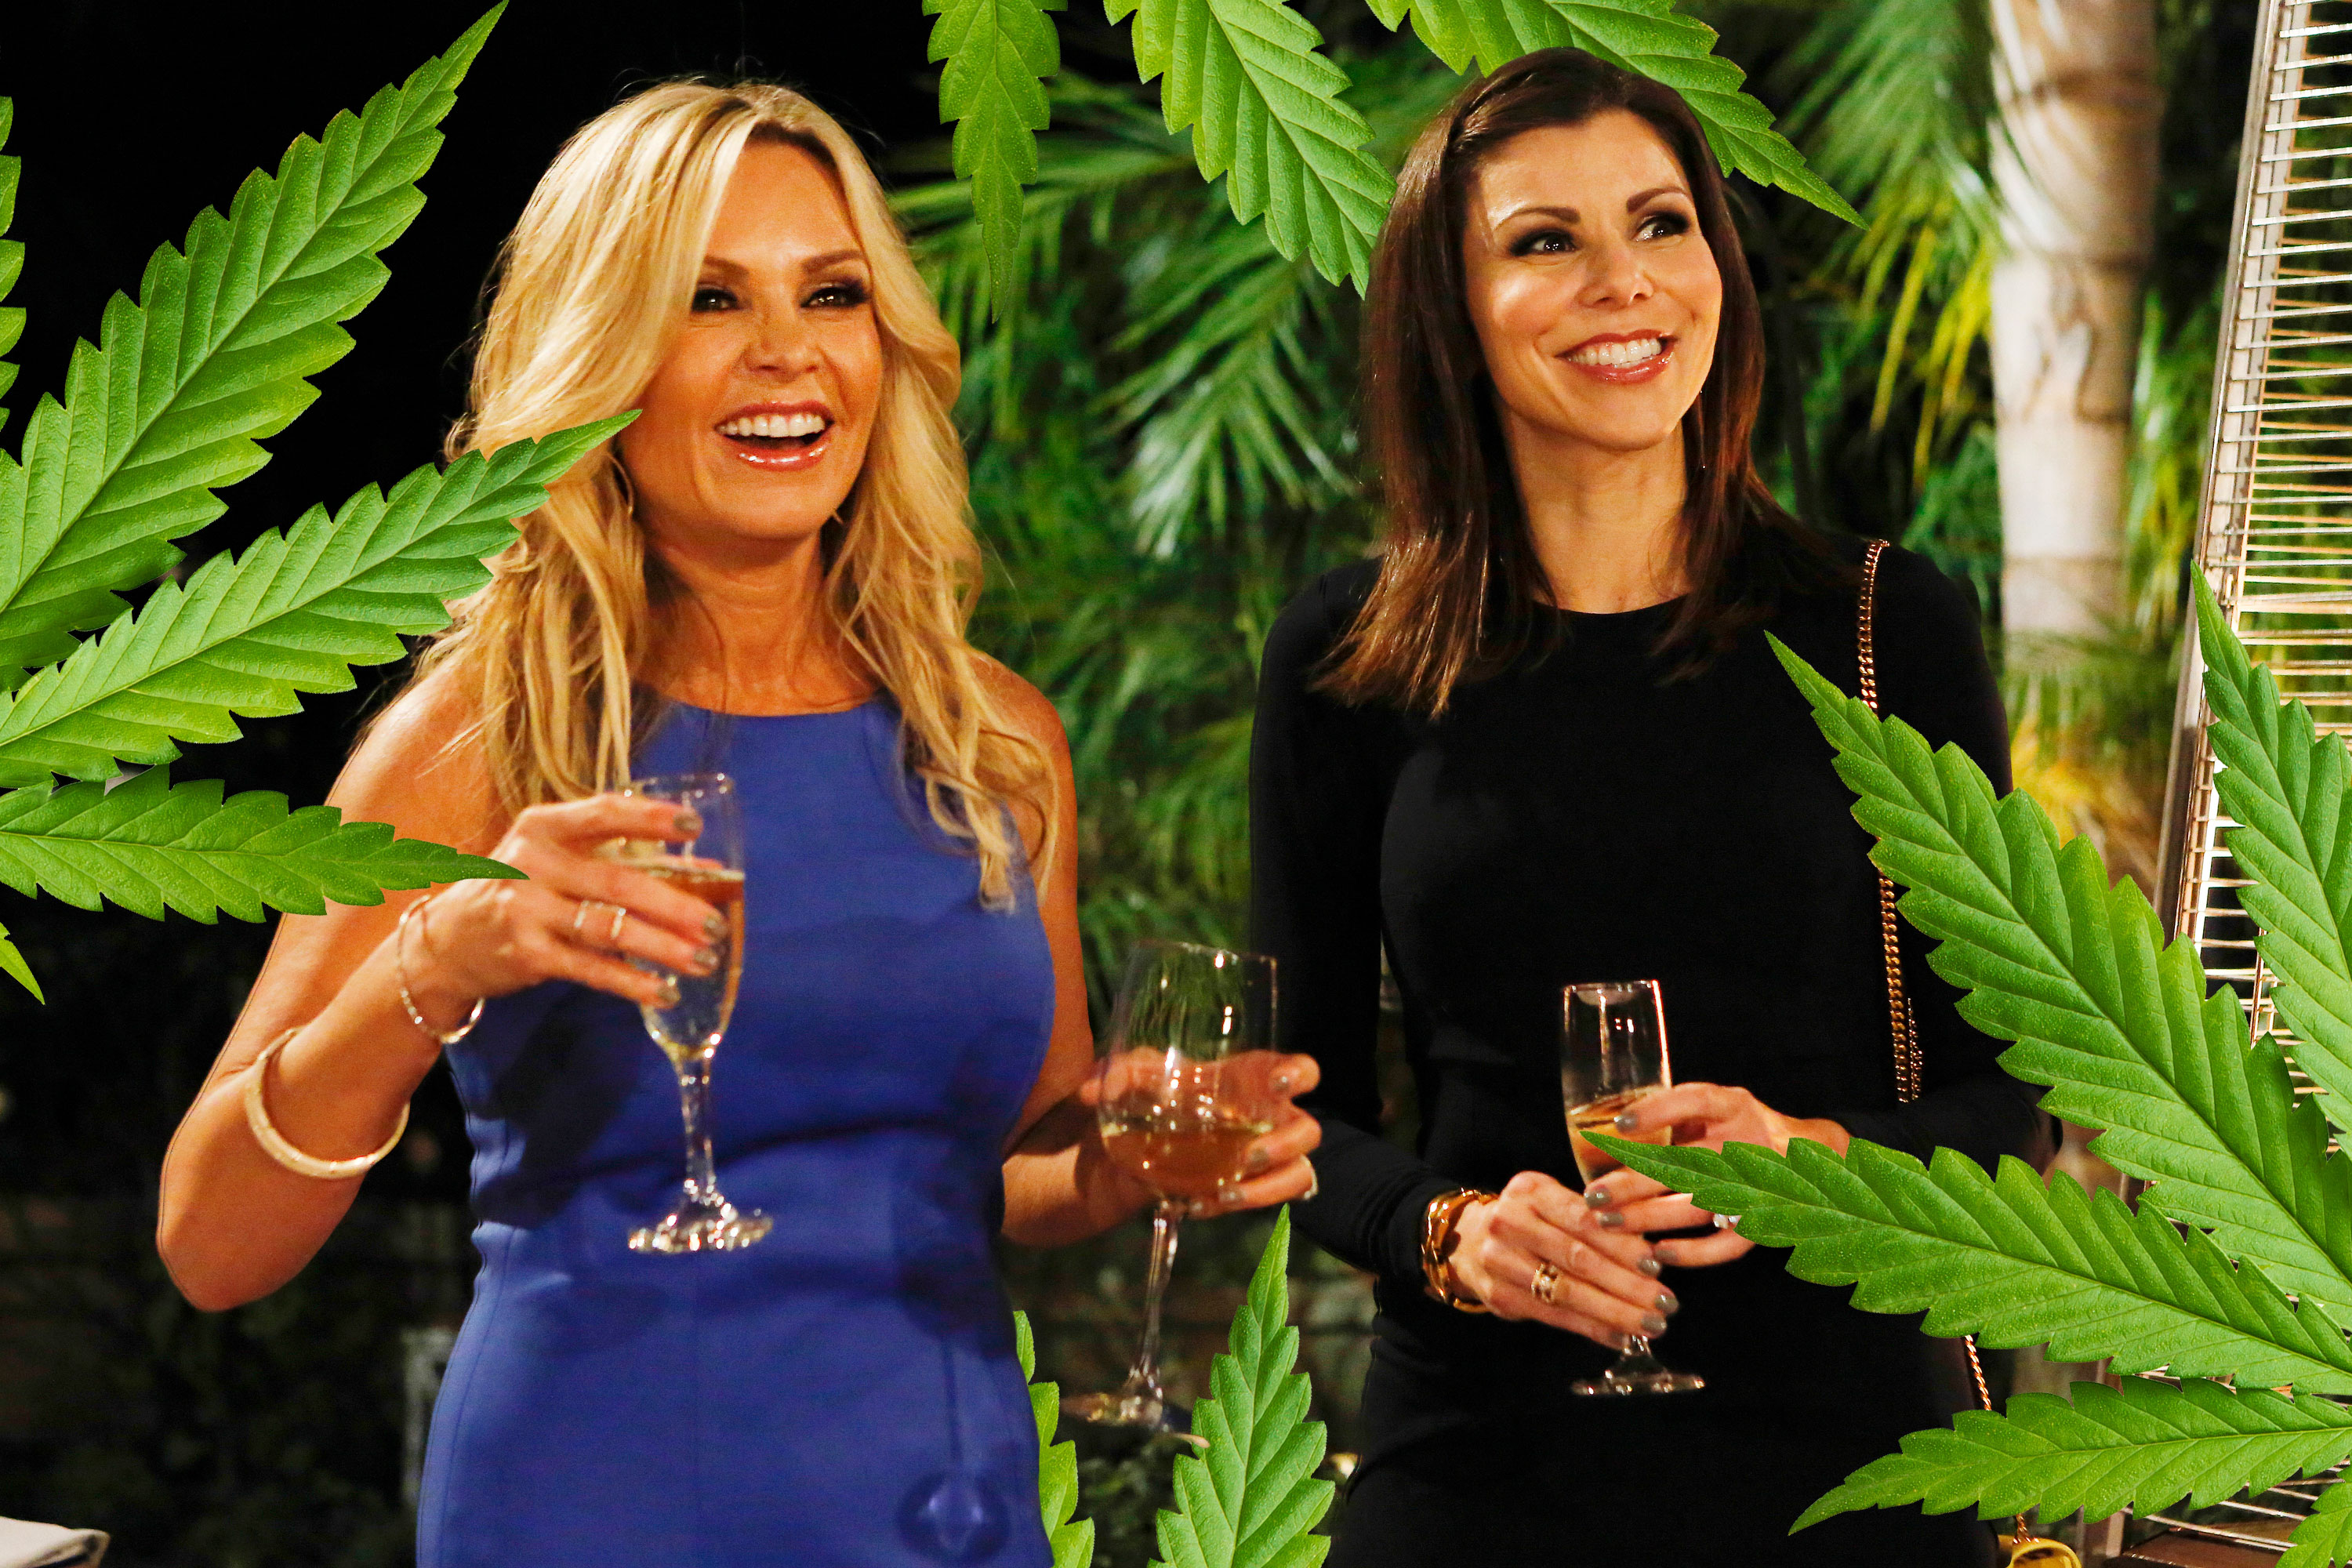 tamra-heather-dubrow-birthday-cannabis.jpg